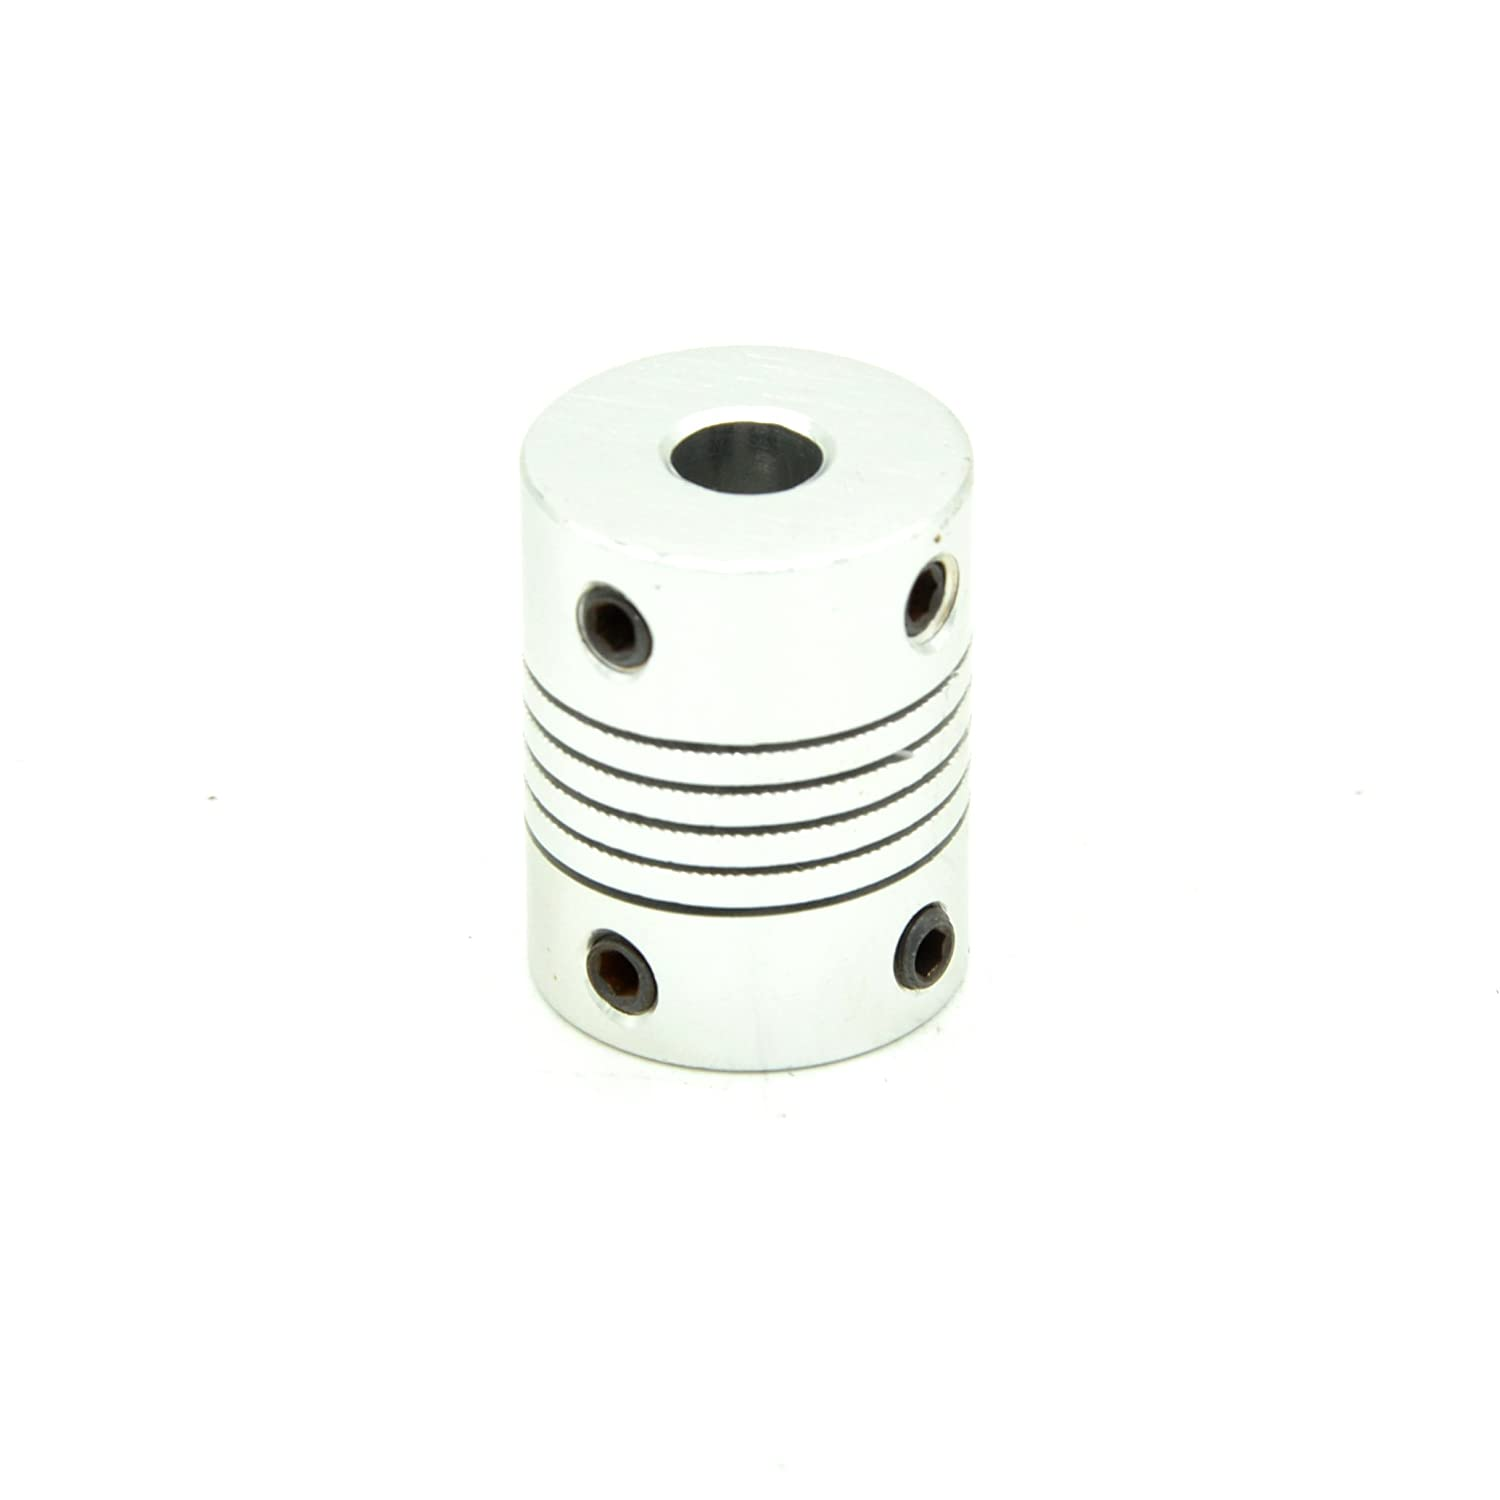 RobotDigg FCDS4-6 Flexible Coupling 4mm to 6mm Aluminum Alloy Beam Coupling Silver Color Flexible Clamping Coupler Pack of 4pcs